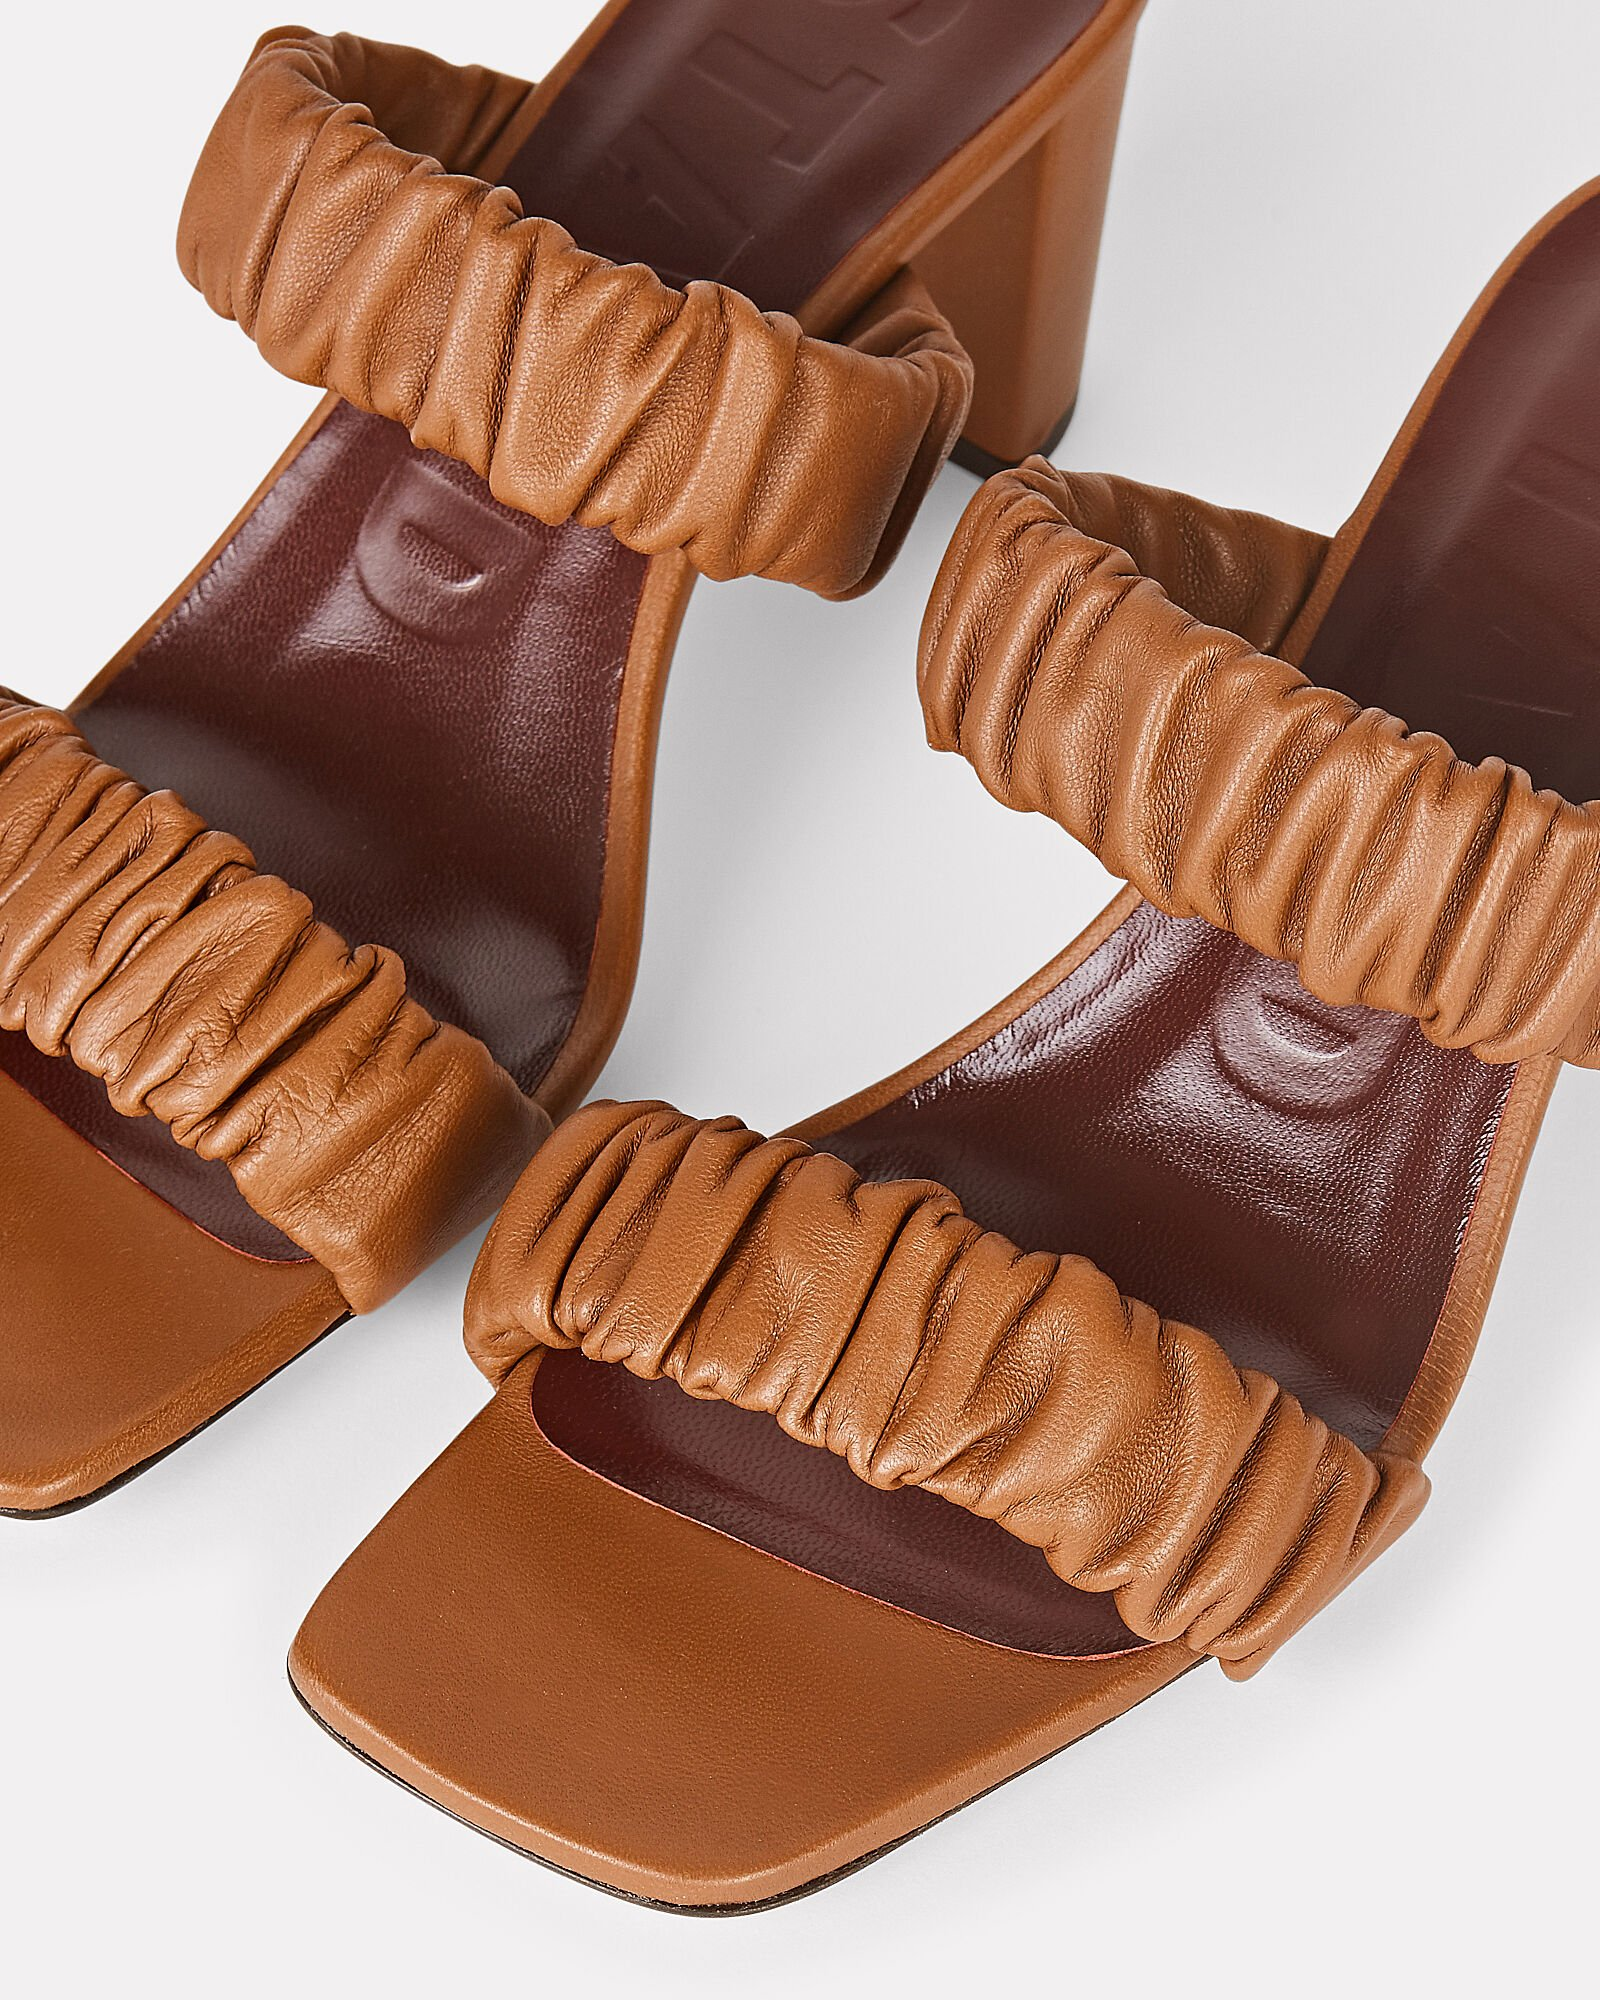 Frankie Leather Slide Sandals, BROWN, hi-res